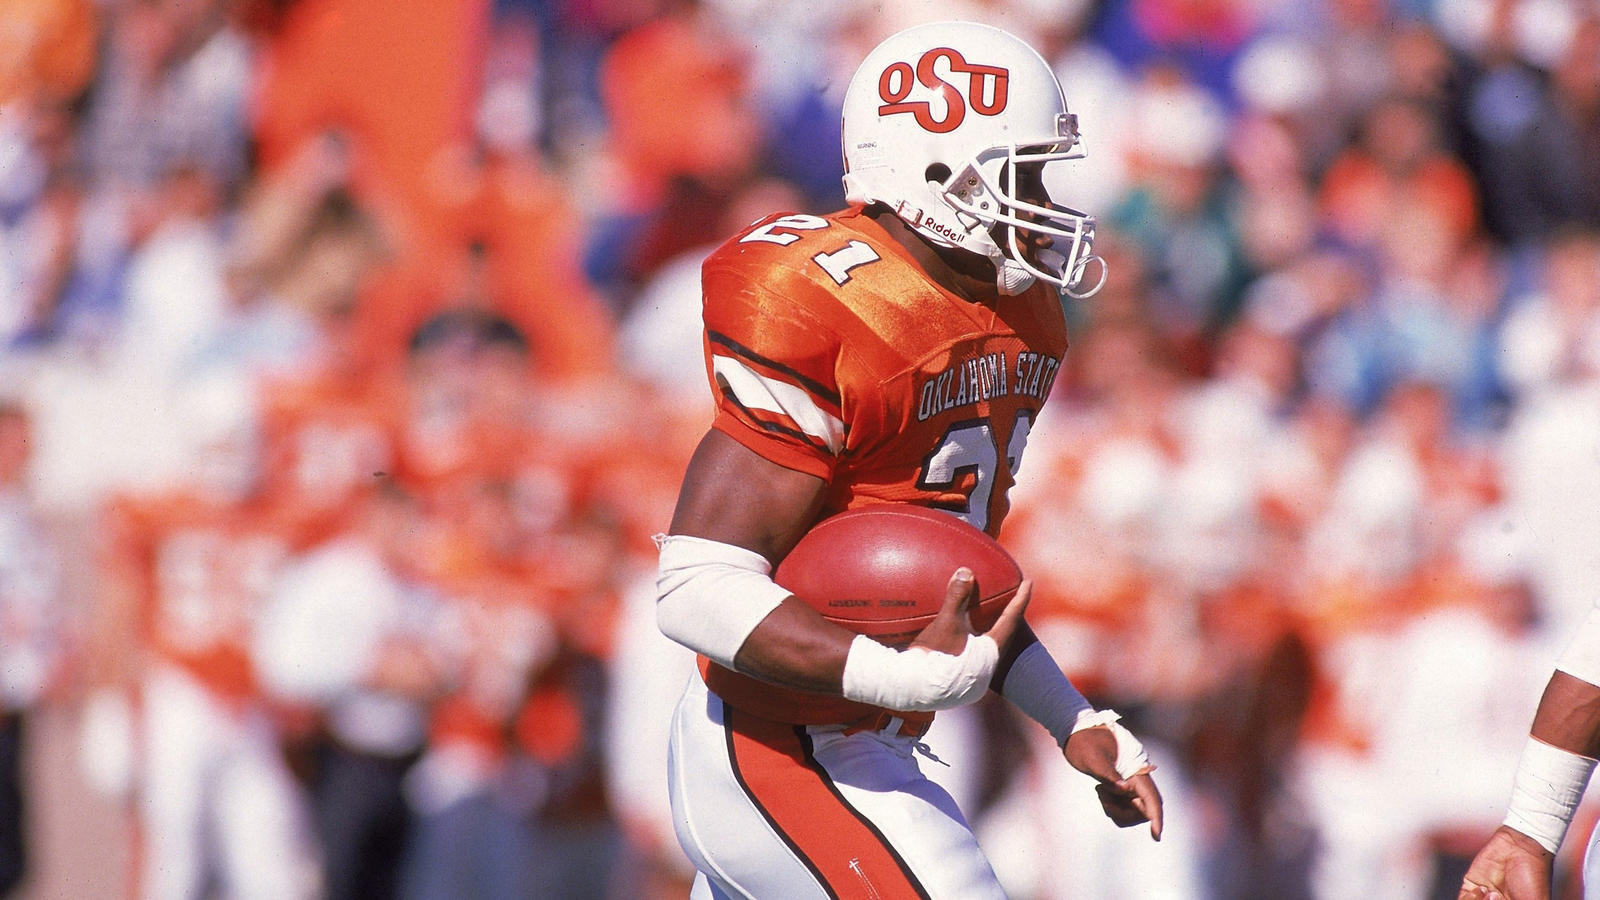 Oklahoma State University Barry Sanders Throwback Jerseys